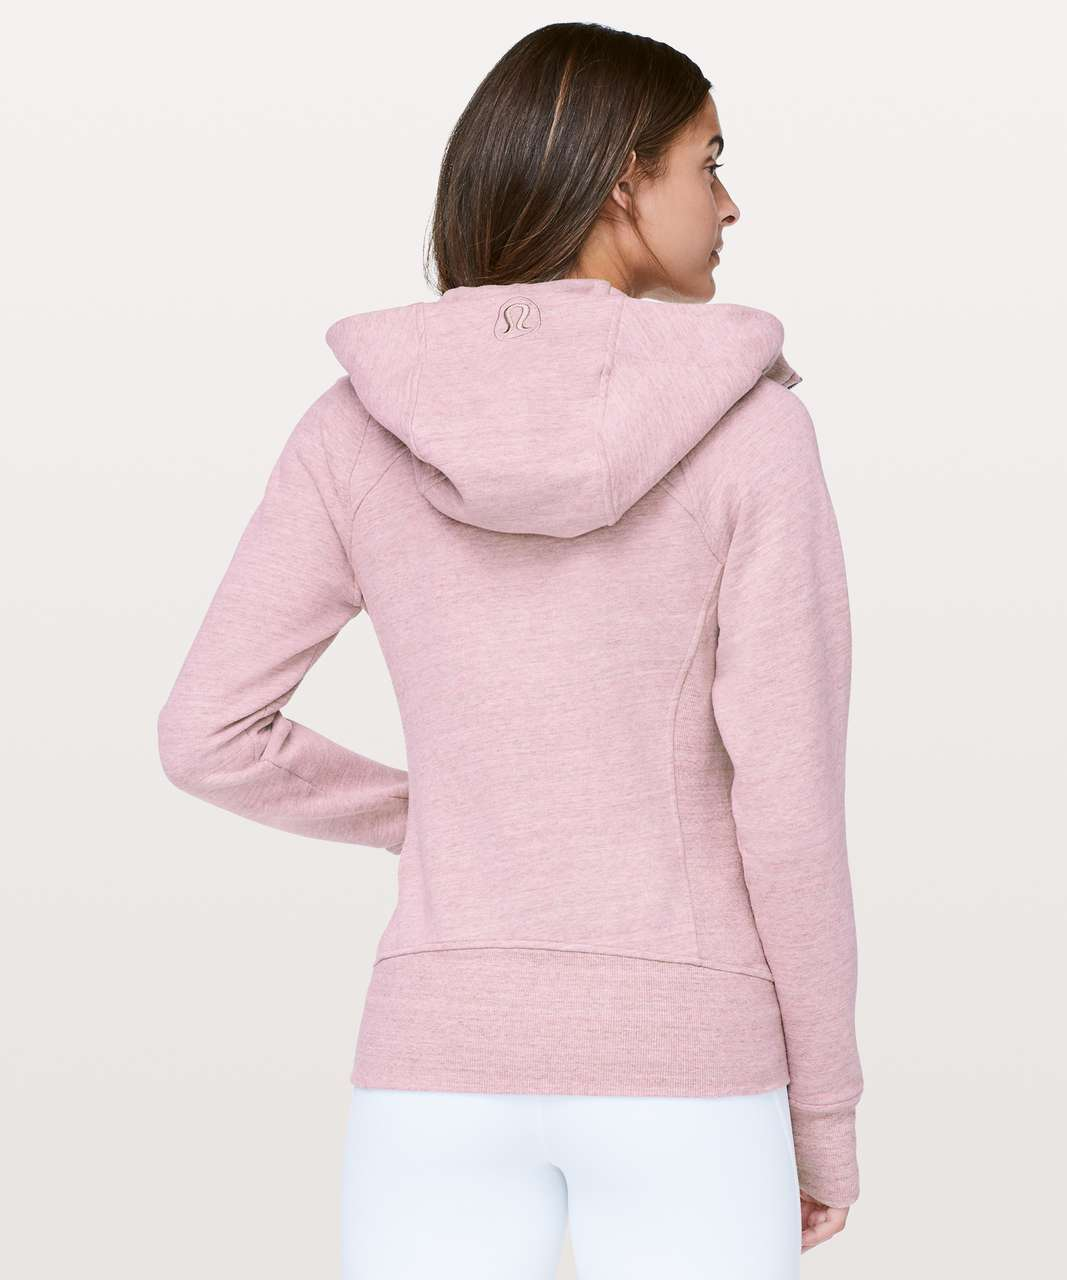 Lululemon Scuba Hoodie *Light Cotton Fleece - Heathered Space Dyed Vintage Mauve